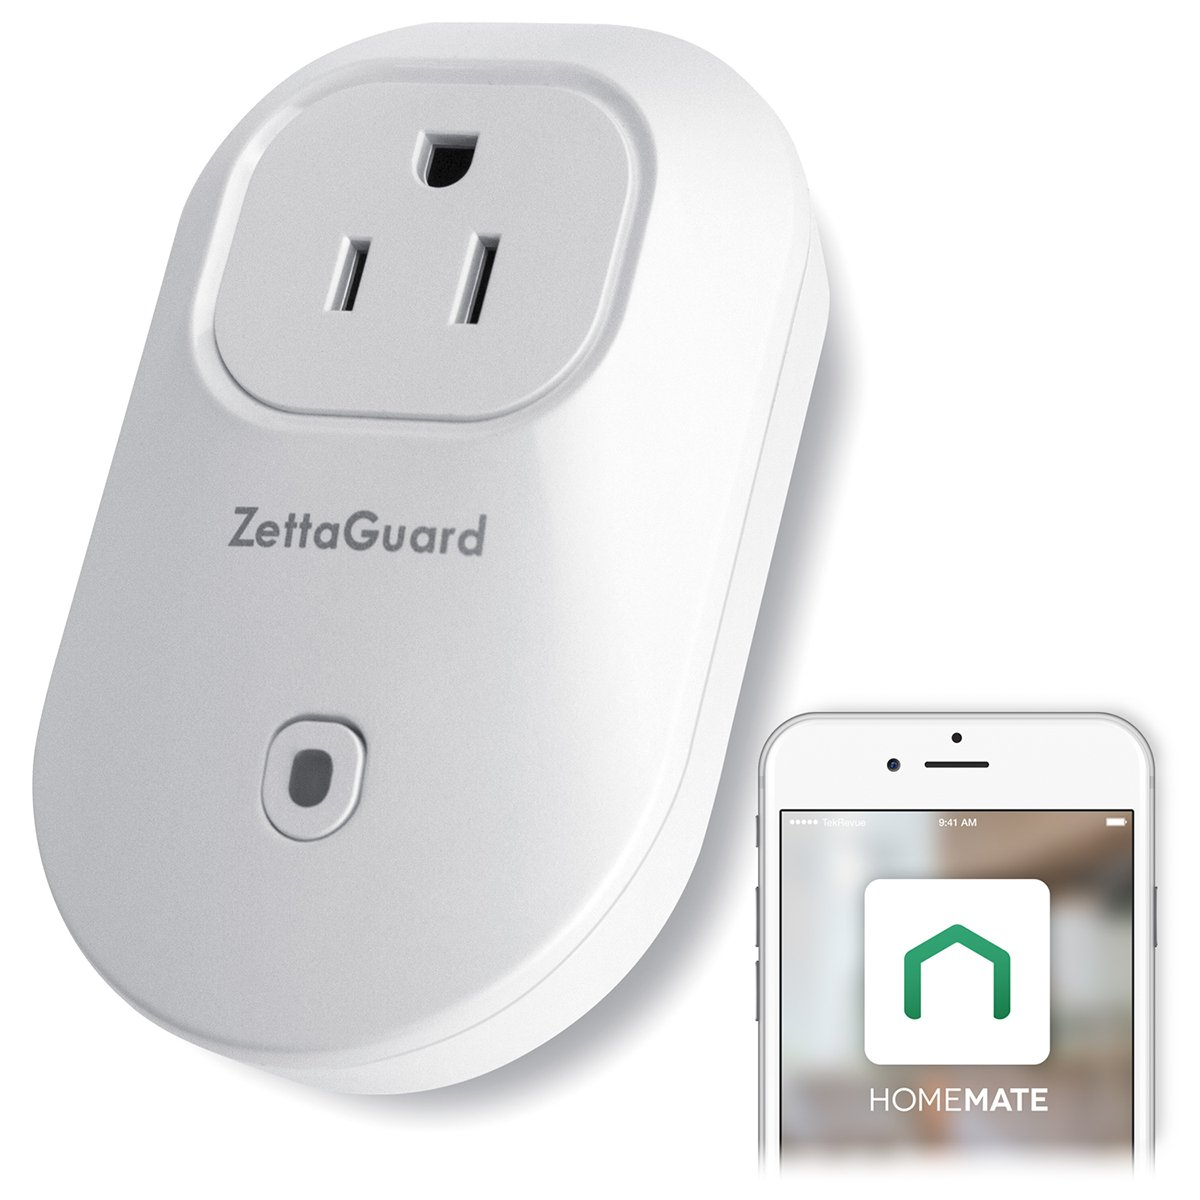 ZettaGuard S25 Wi-Fi Smart Socket Outlet US Plug Mini, Alexa Echo and Google Voice Control, HomeMate App Remorte Control Smart Plug, White